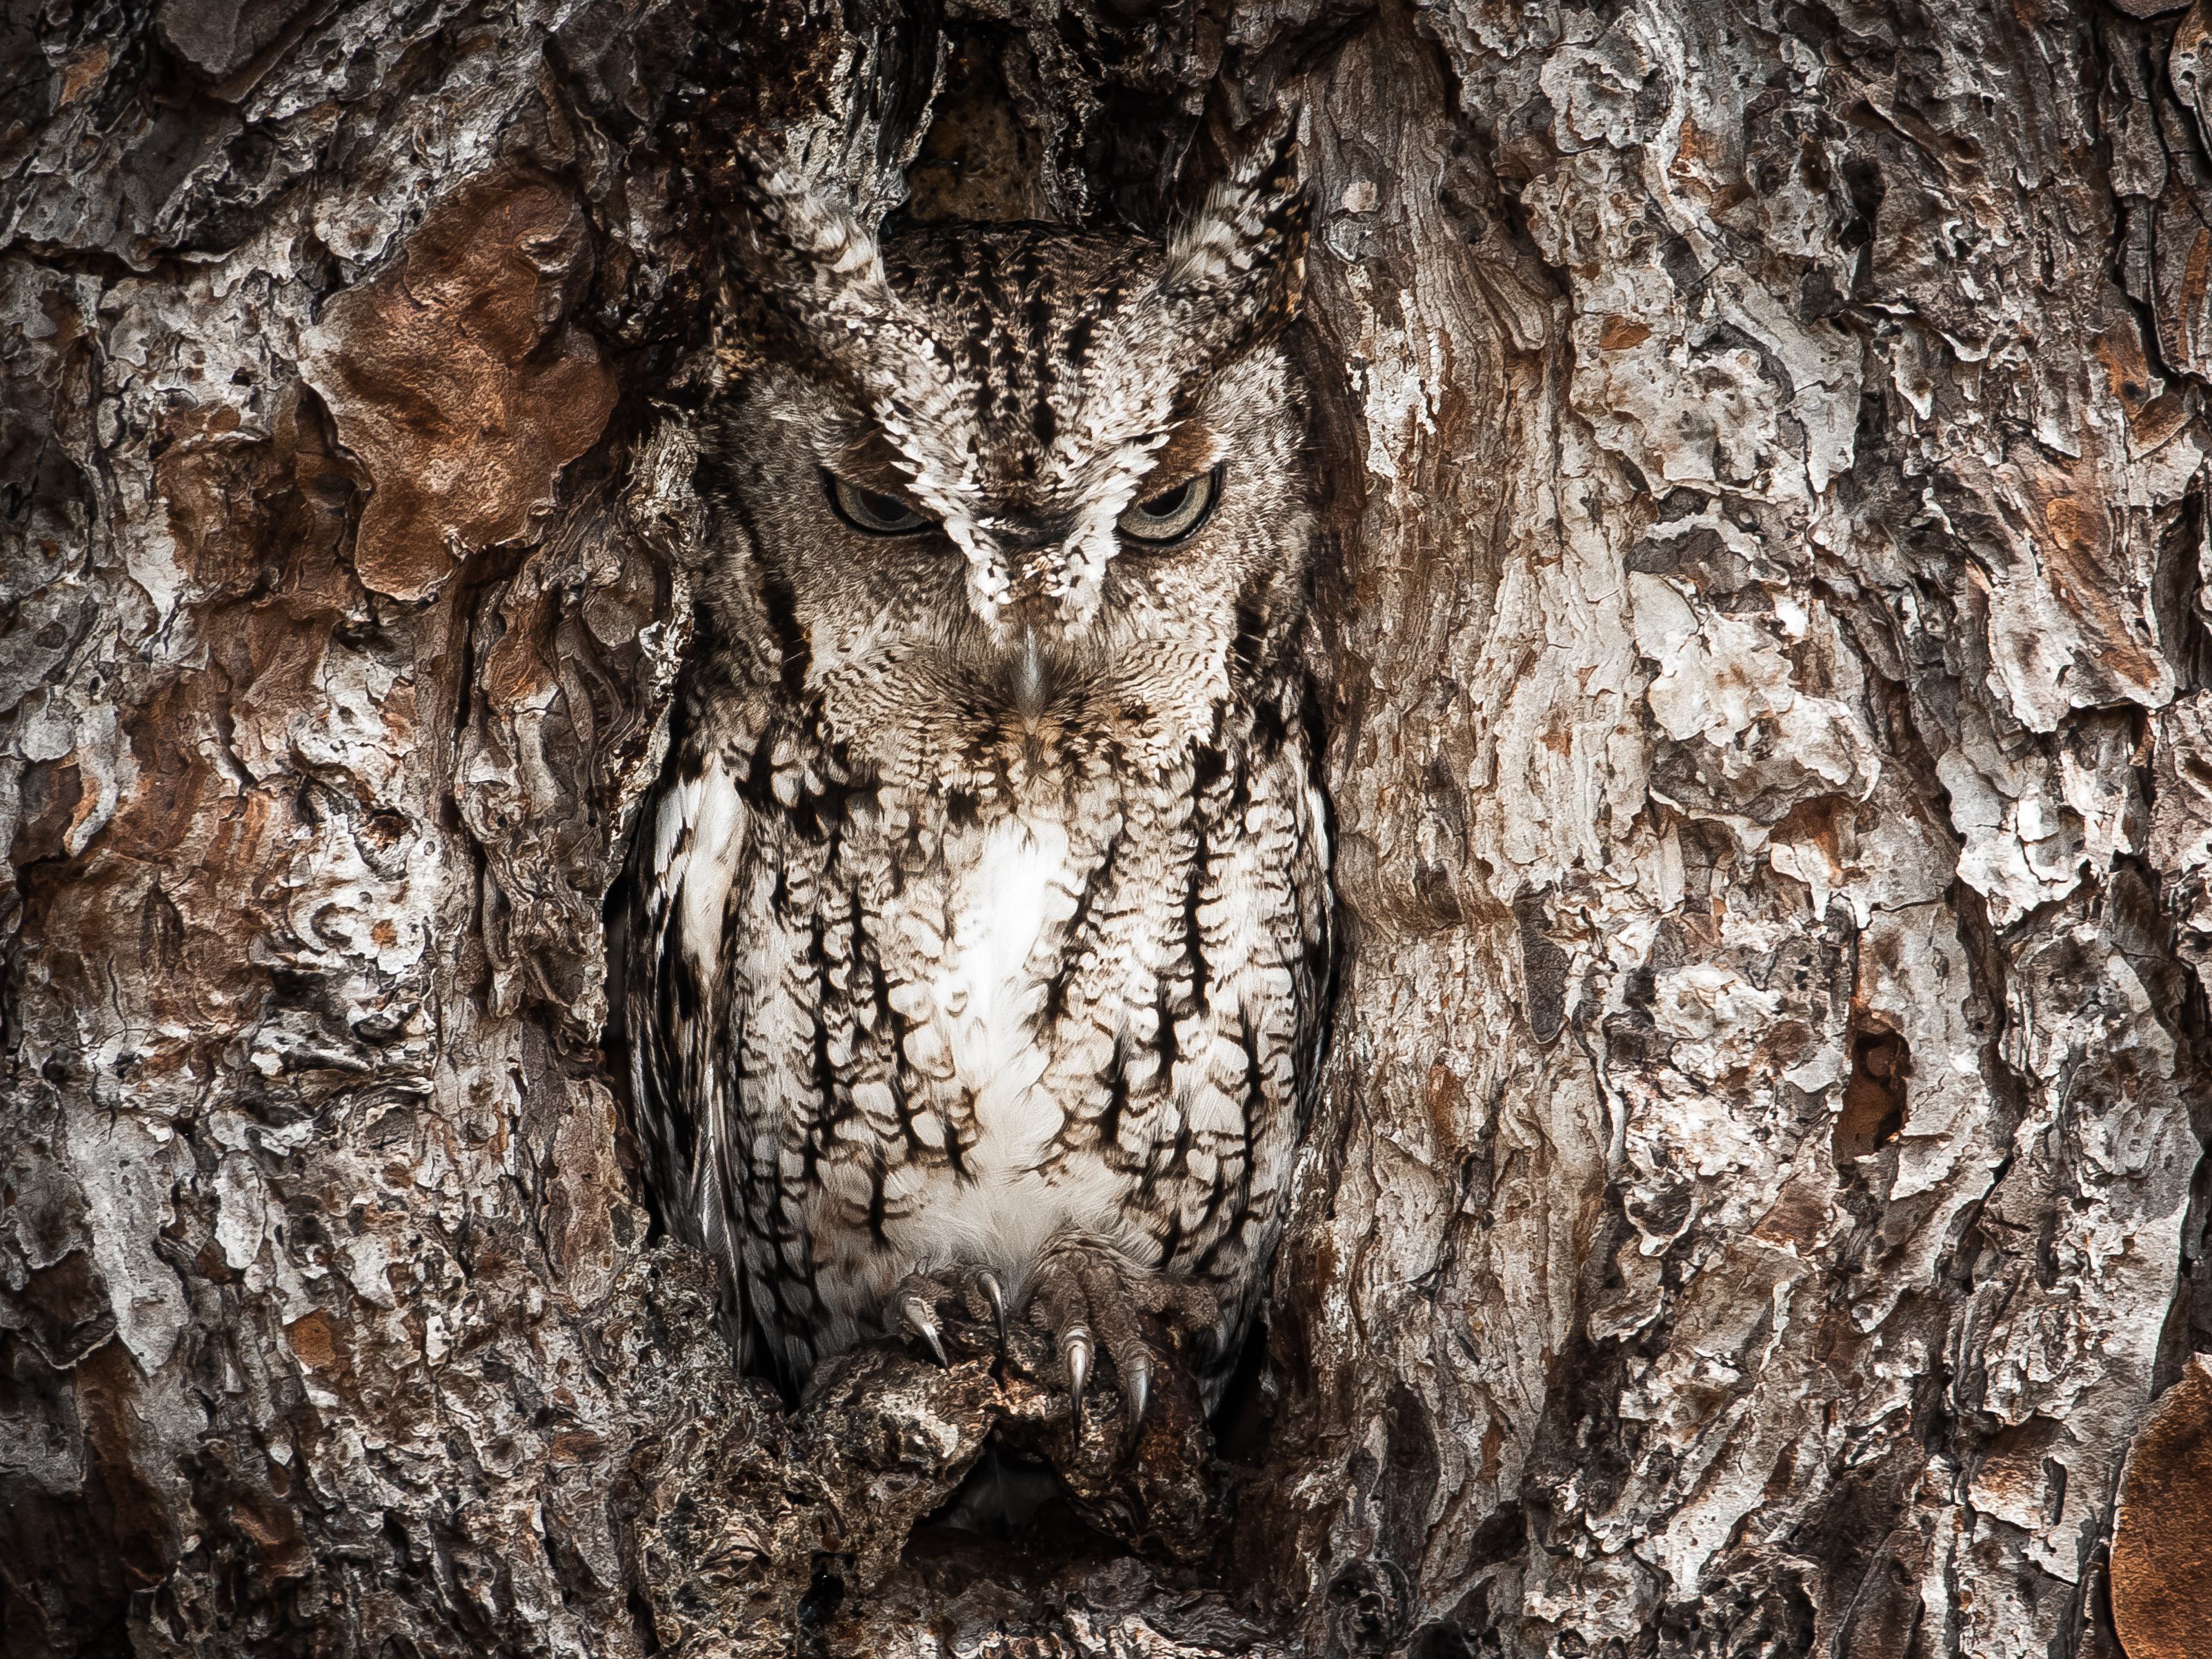 Eastern screech owl hiding in a tree